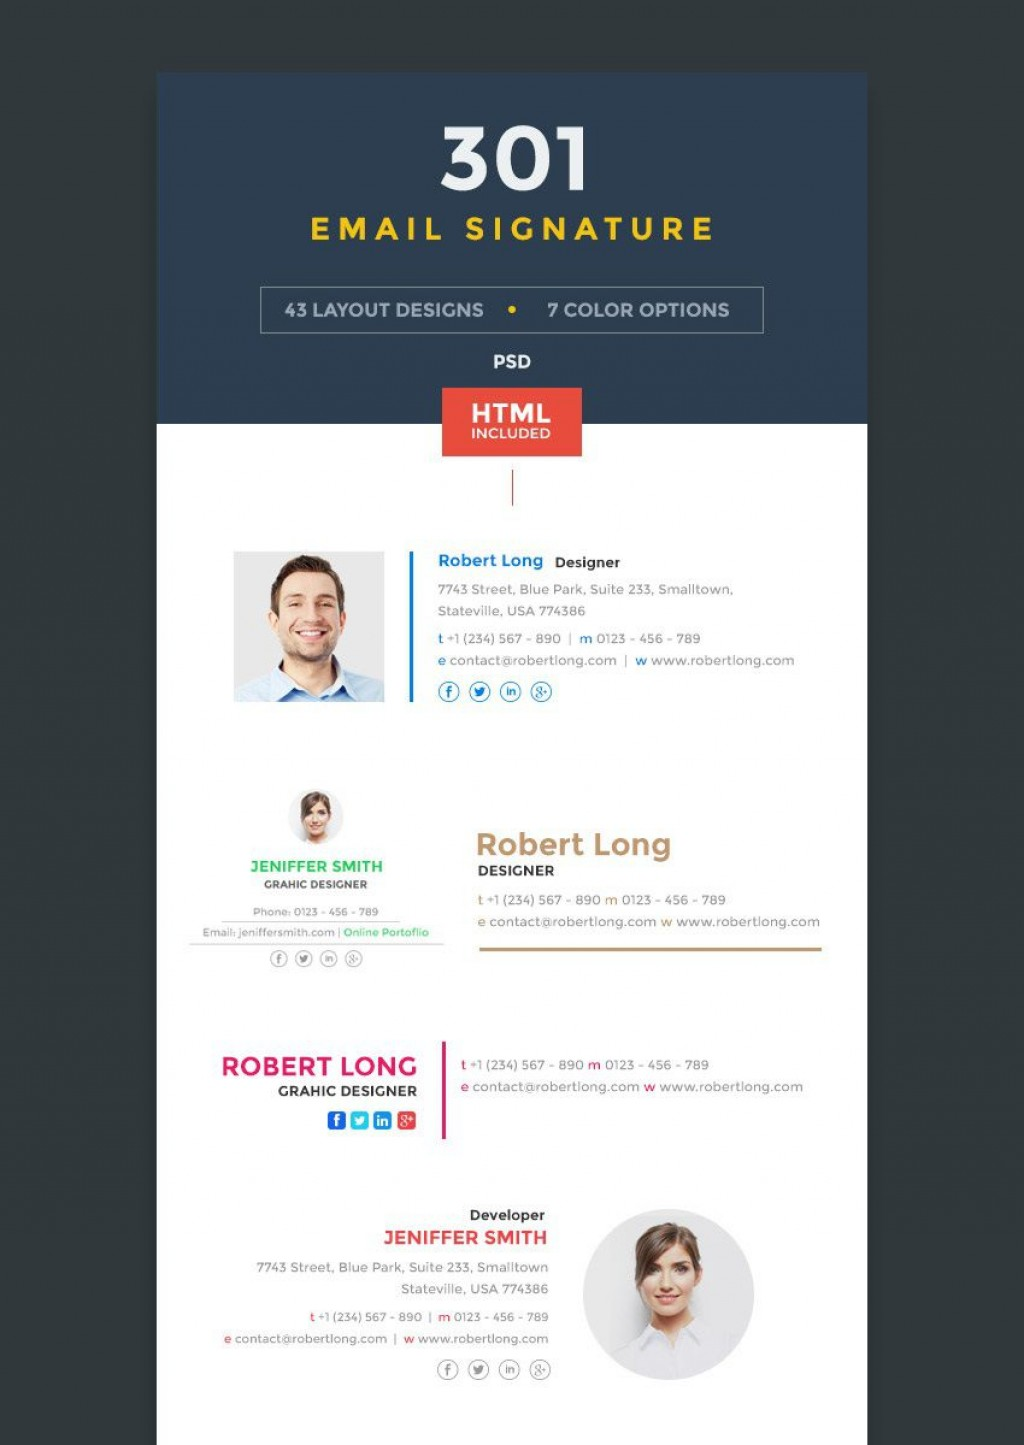 002 Magnificent Outlook Email Signature Template Example  ExamplesLarge